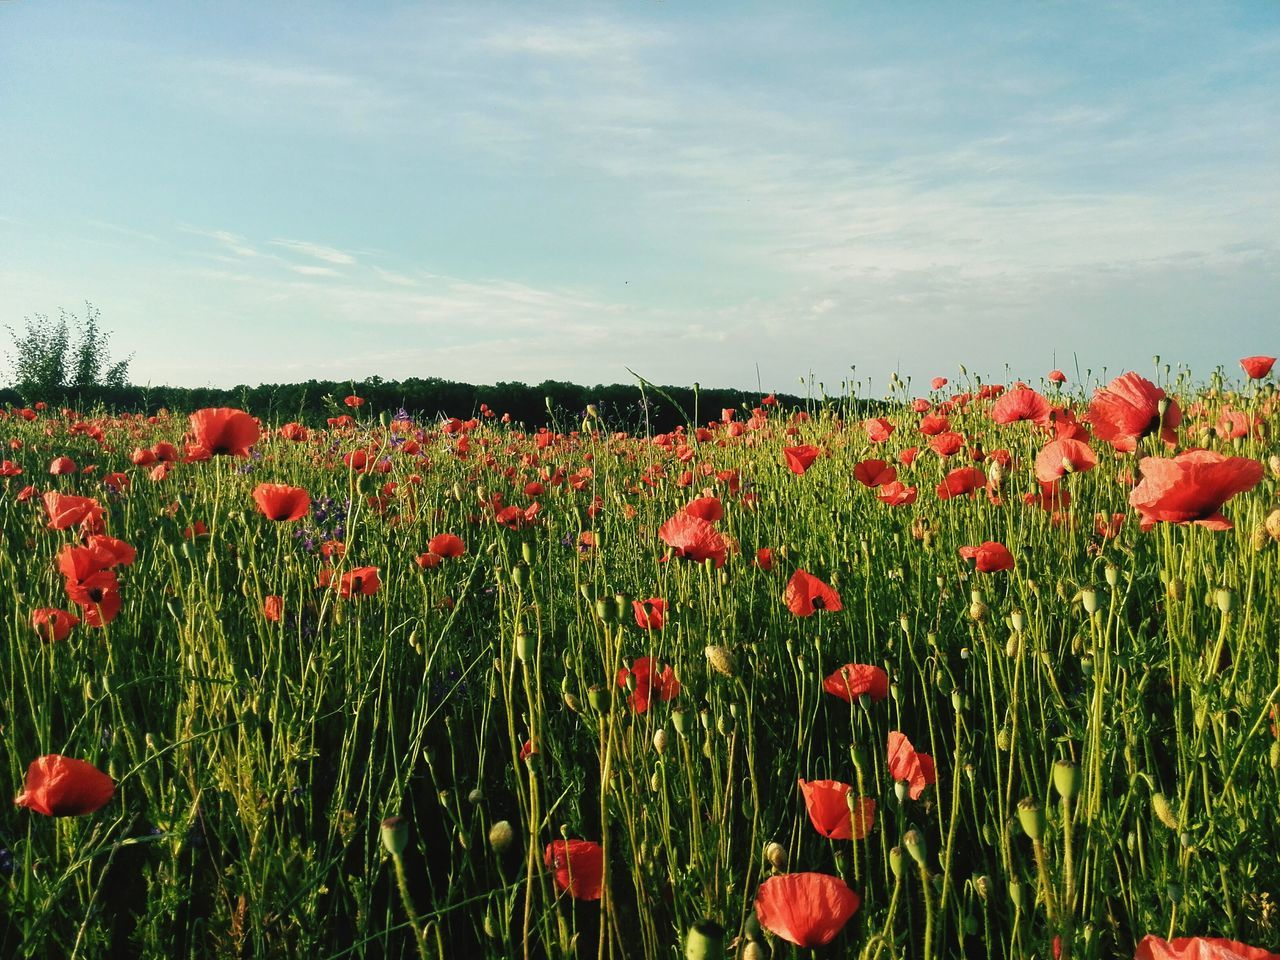 growth, flower, nature, field, beauty in nature, poppy, red, plant, blossoming, fragility, spring, blooming, summer, freshness, petal, outdoors, no people, tranquility, sky, beauty, day, flower head